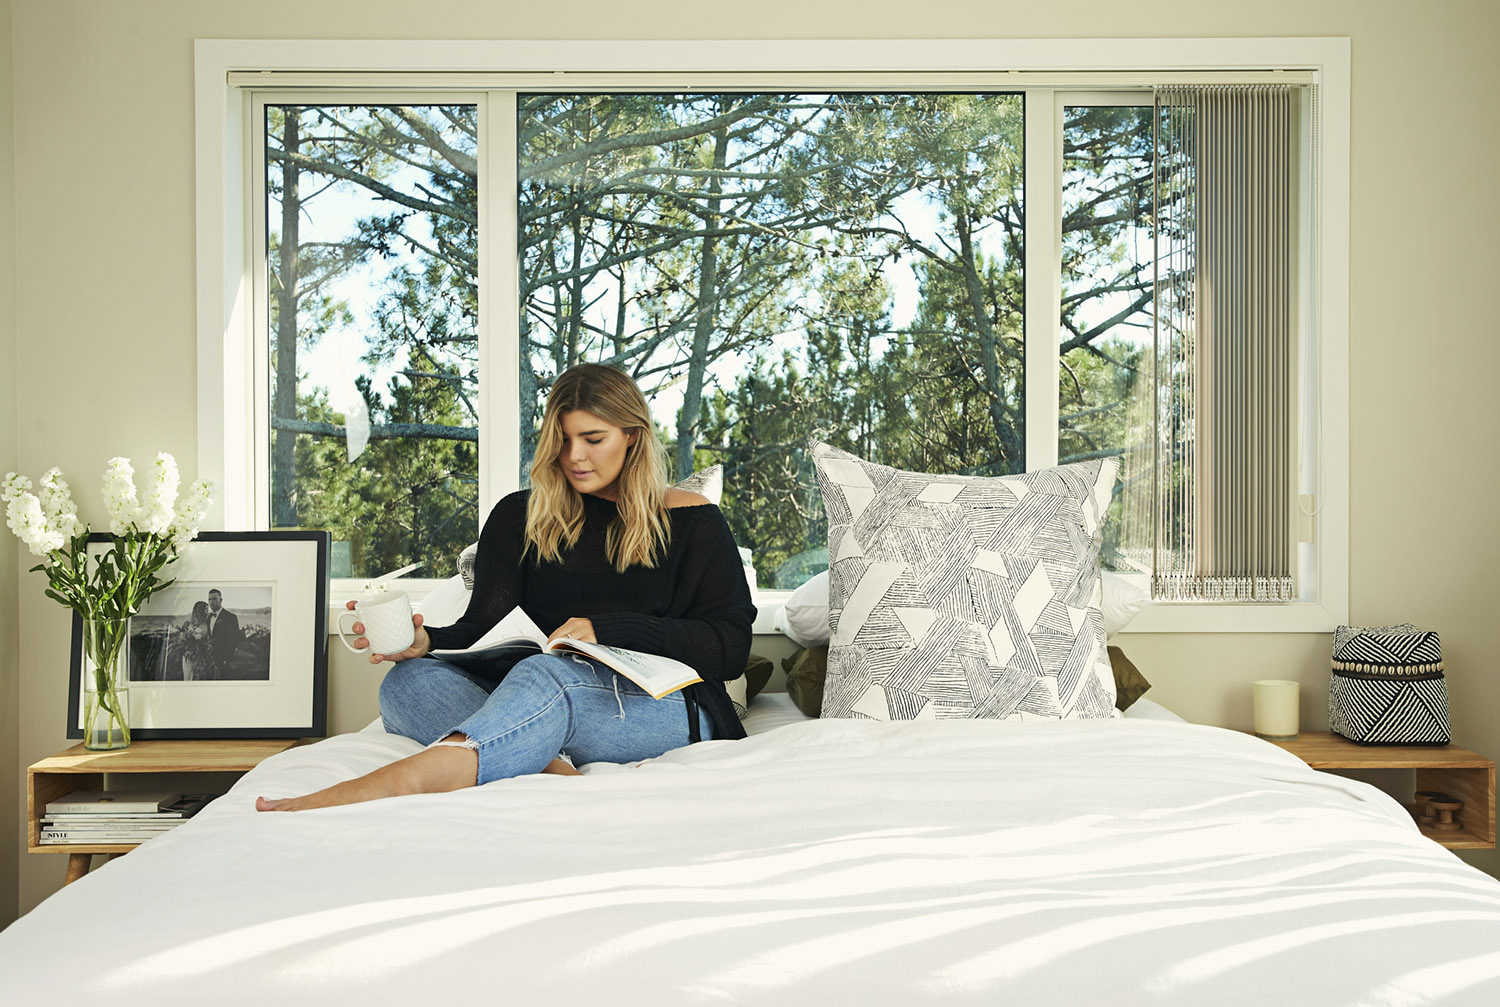 IVDM Photography_sealy campaign_commercial photography_mandy duncan sitting on bed.jpg